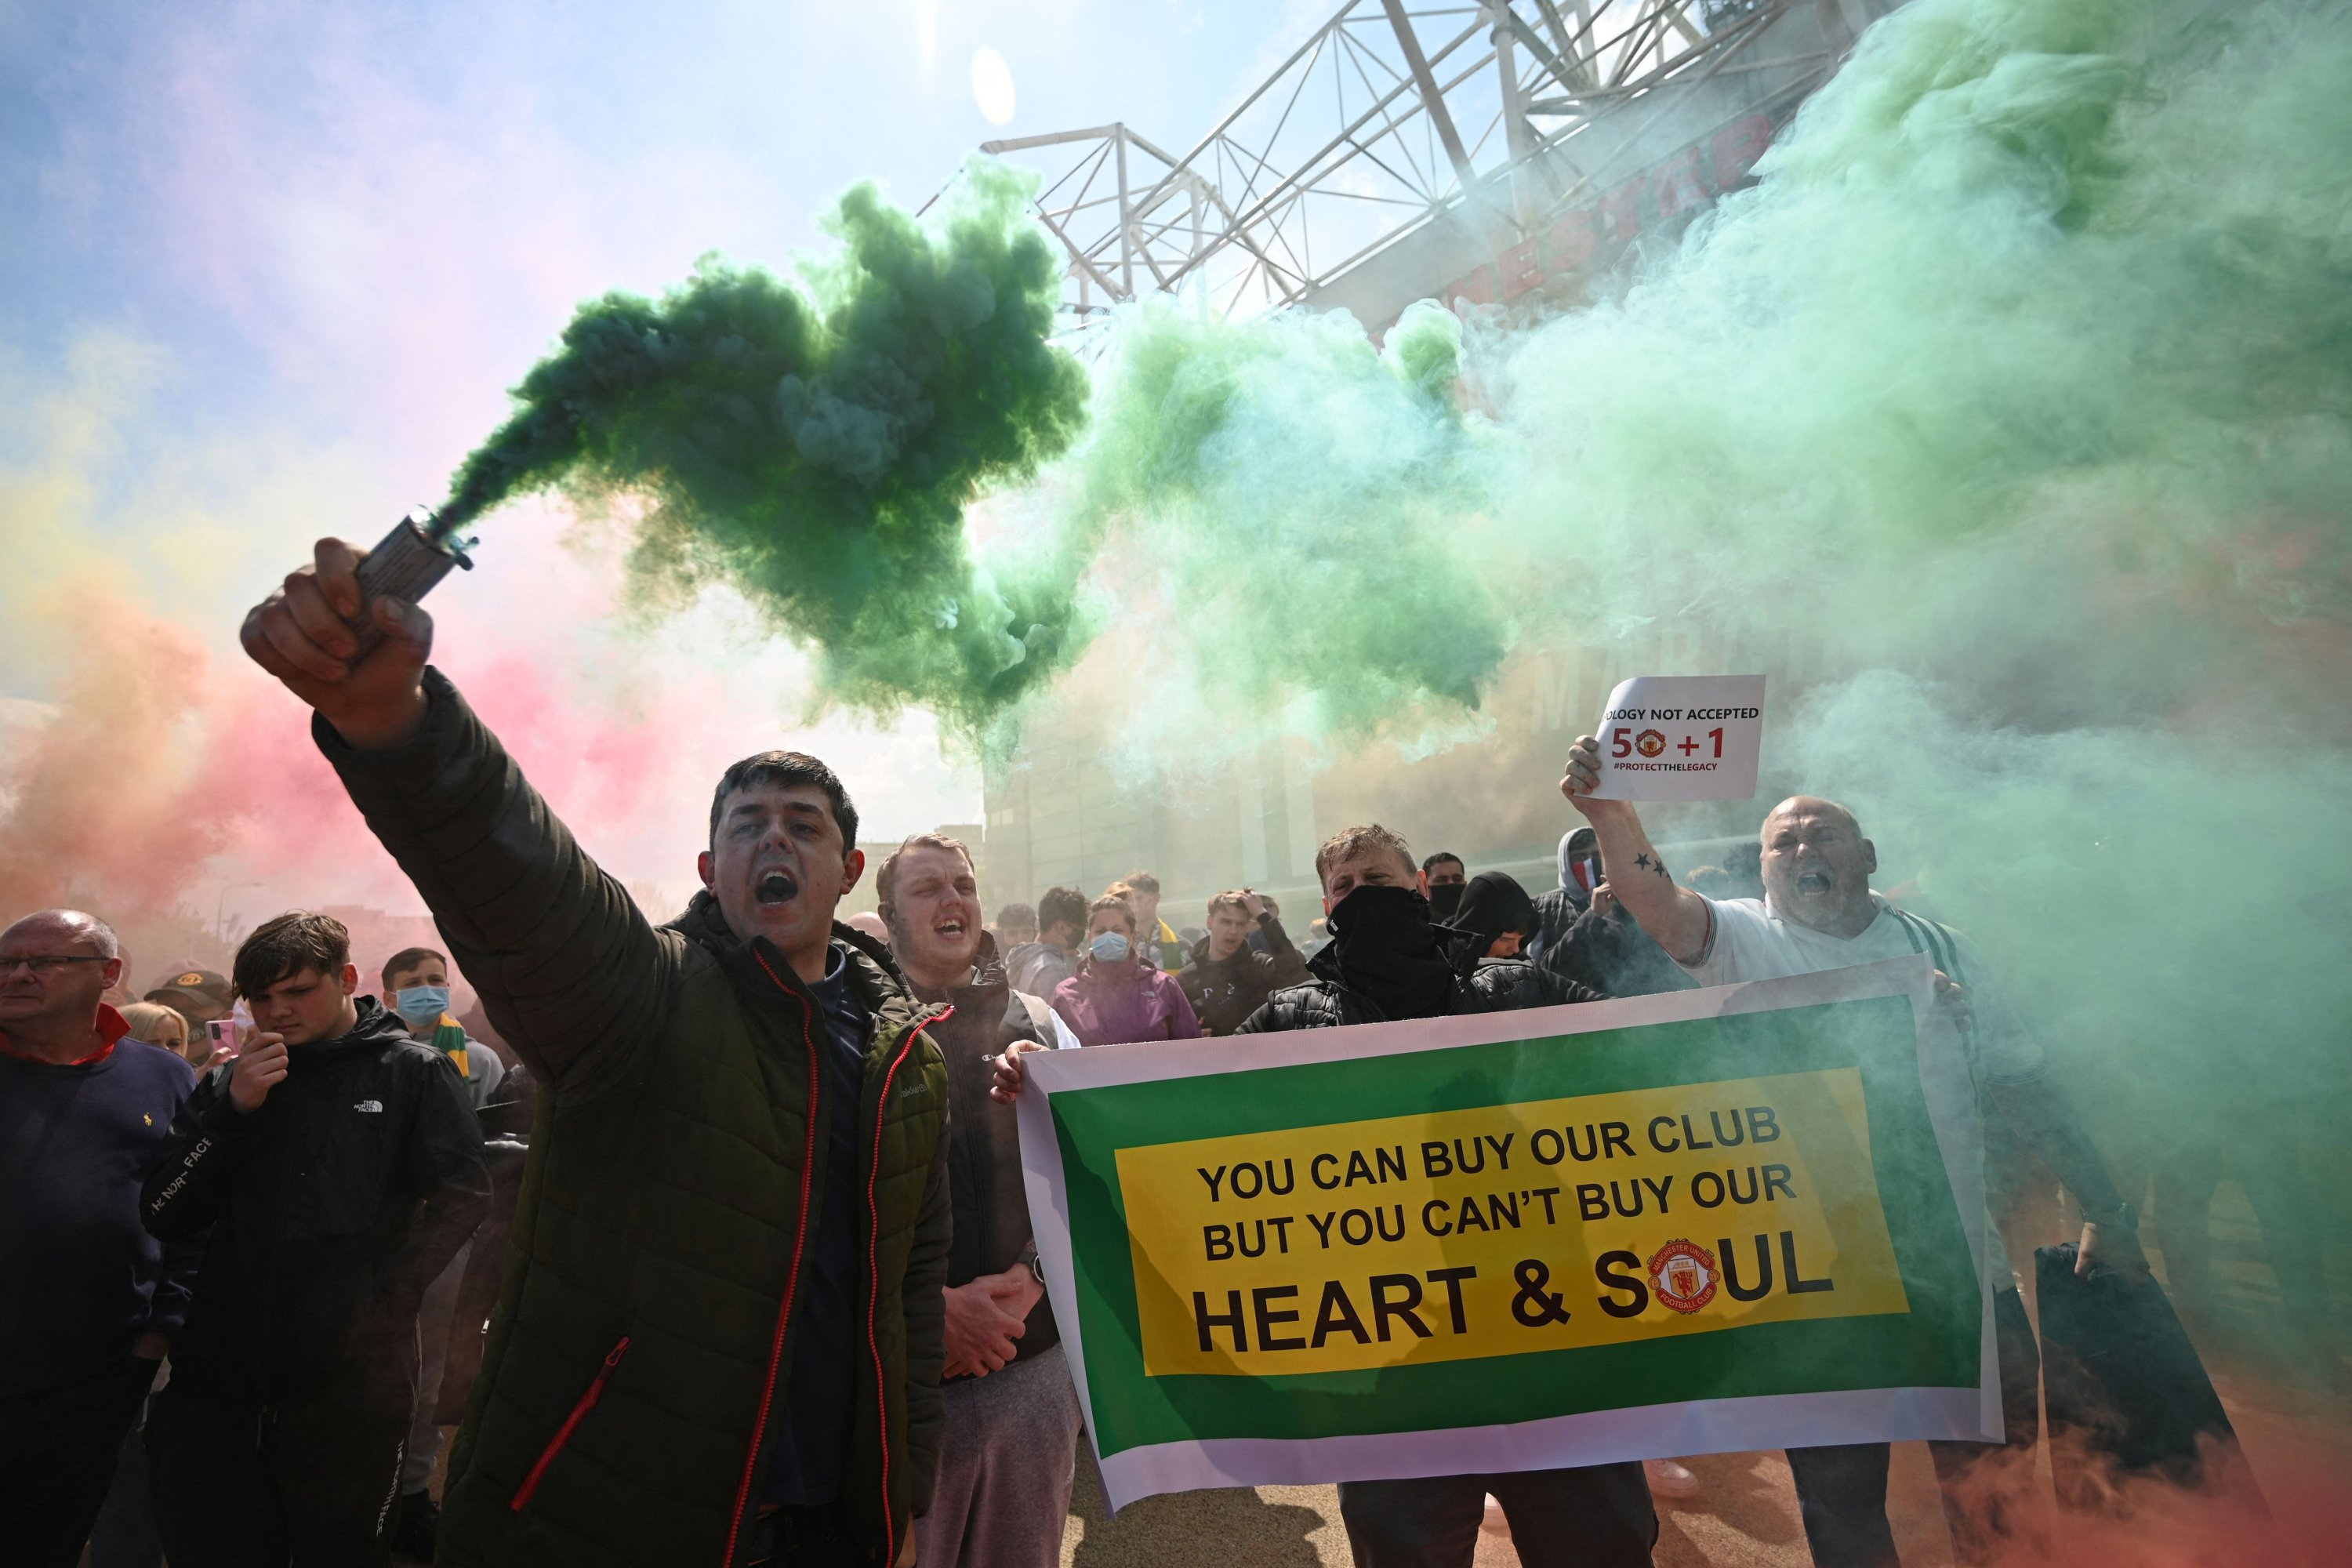 Manchester United supporters protest against the club owners outside the Old Trafford stadium in Manchester, northwest England, May 2, 2021. (AFP Photo)